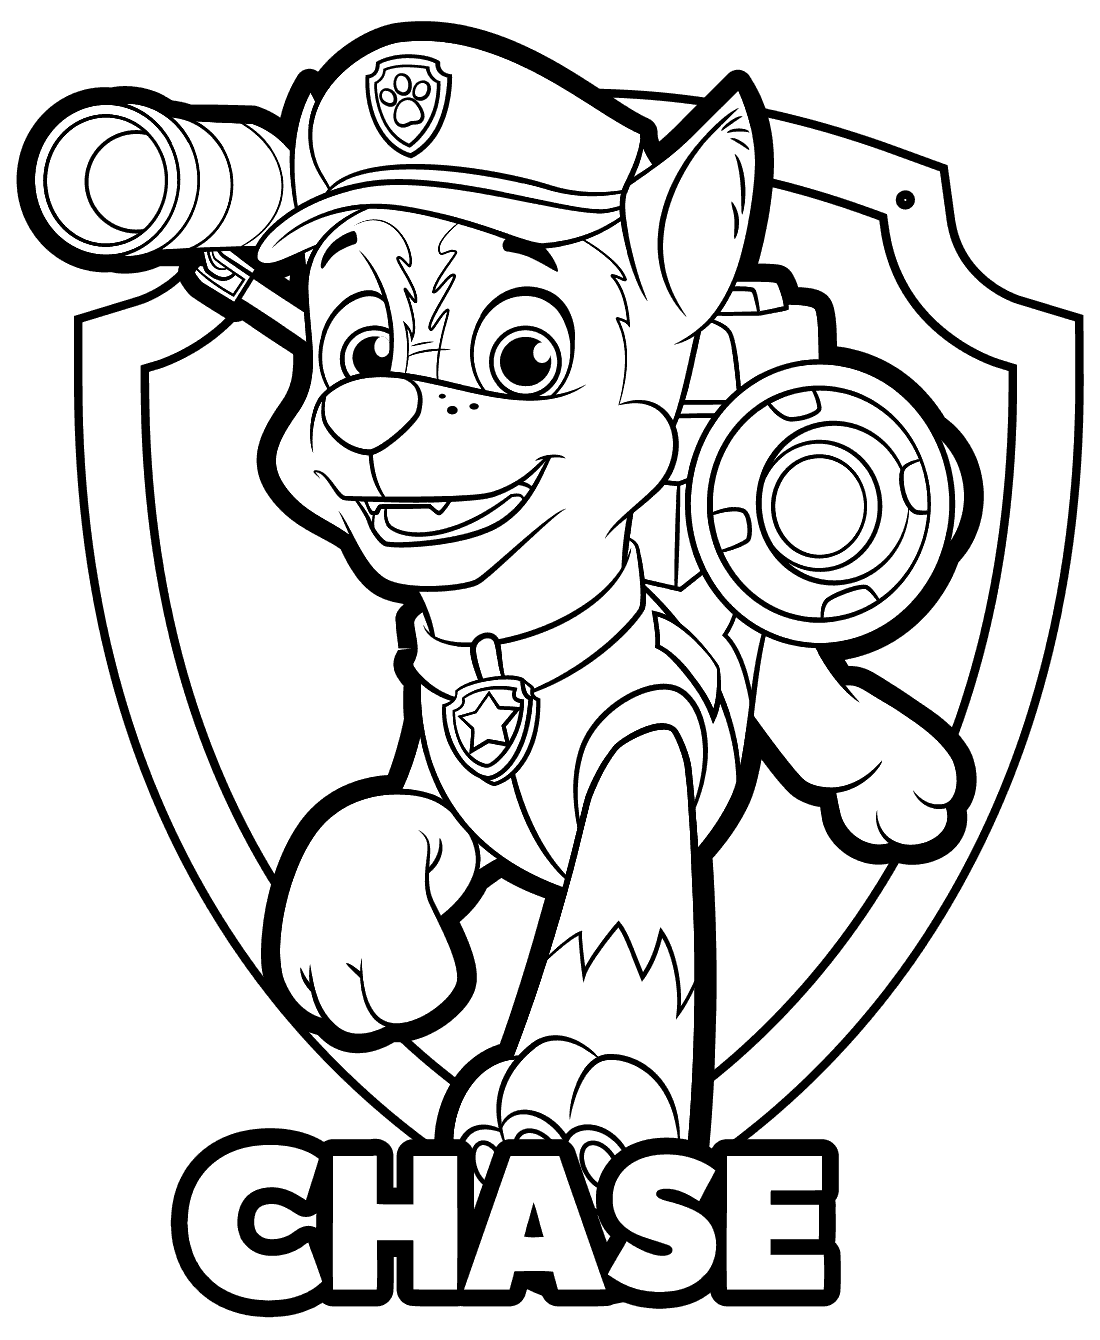 Chase paw patrol drawing at free for for Chase coloring page